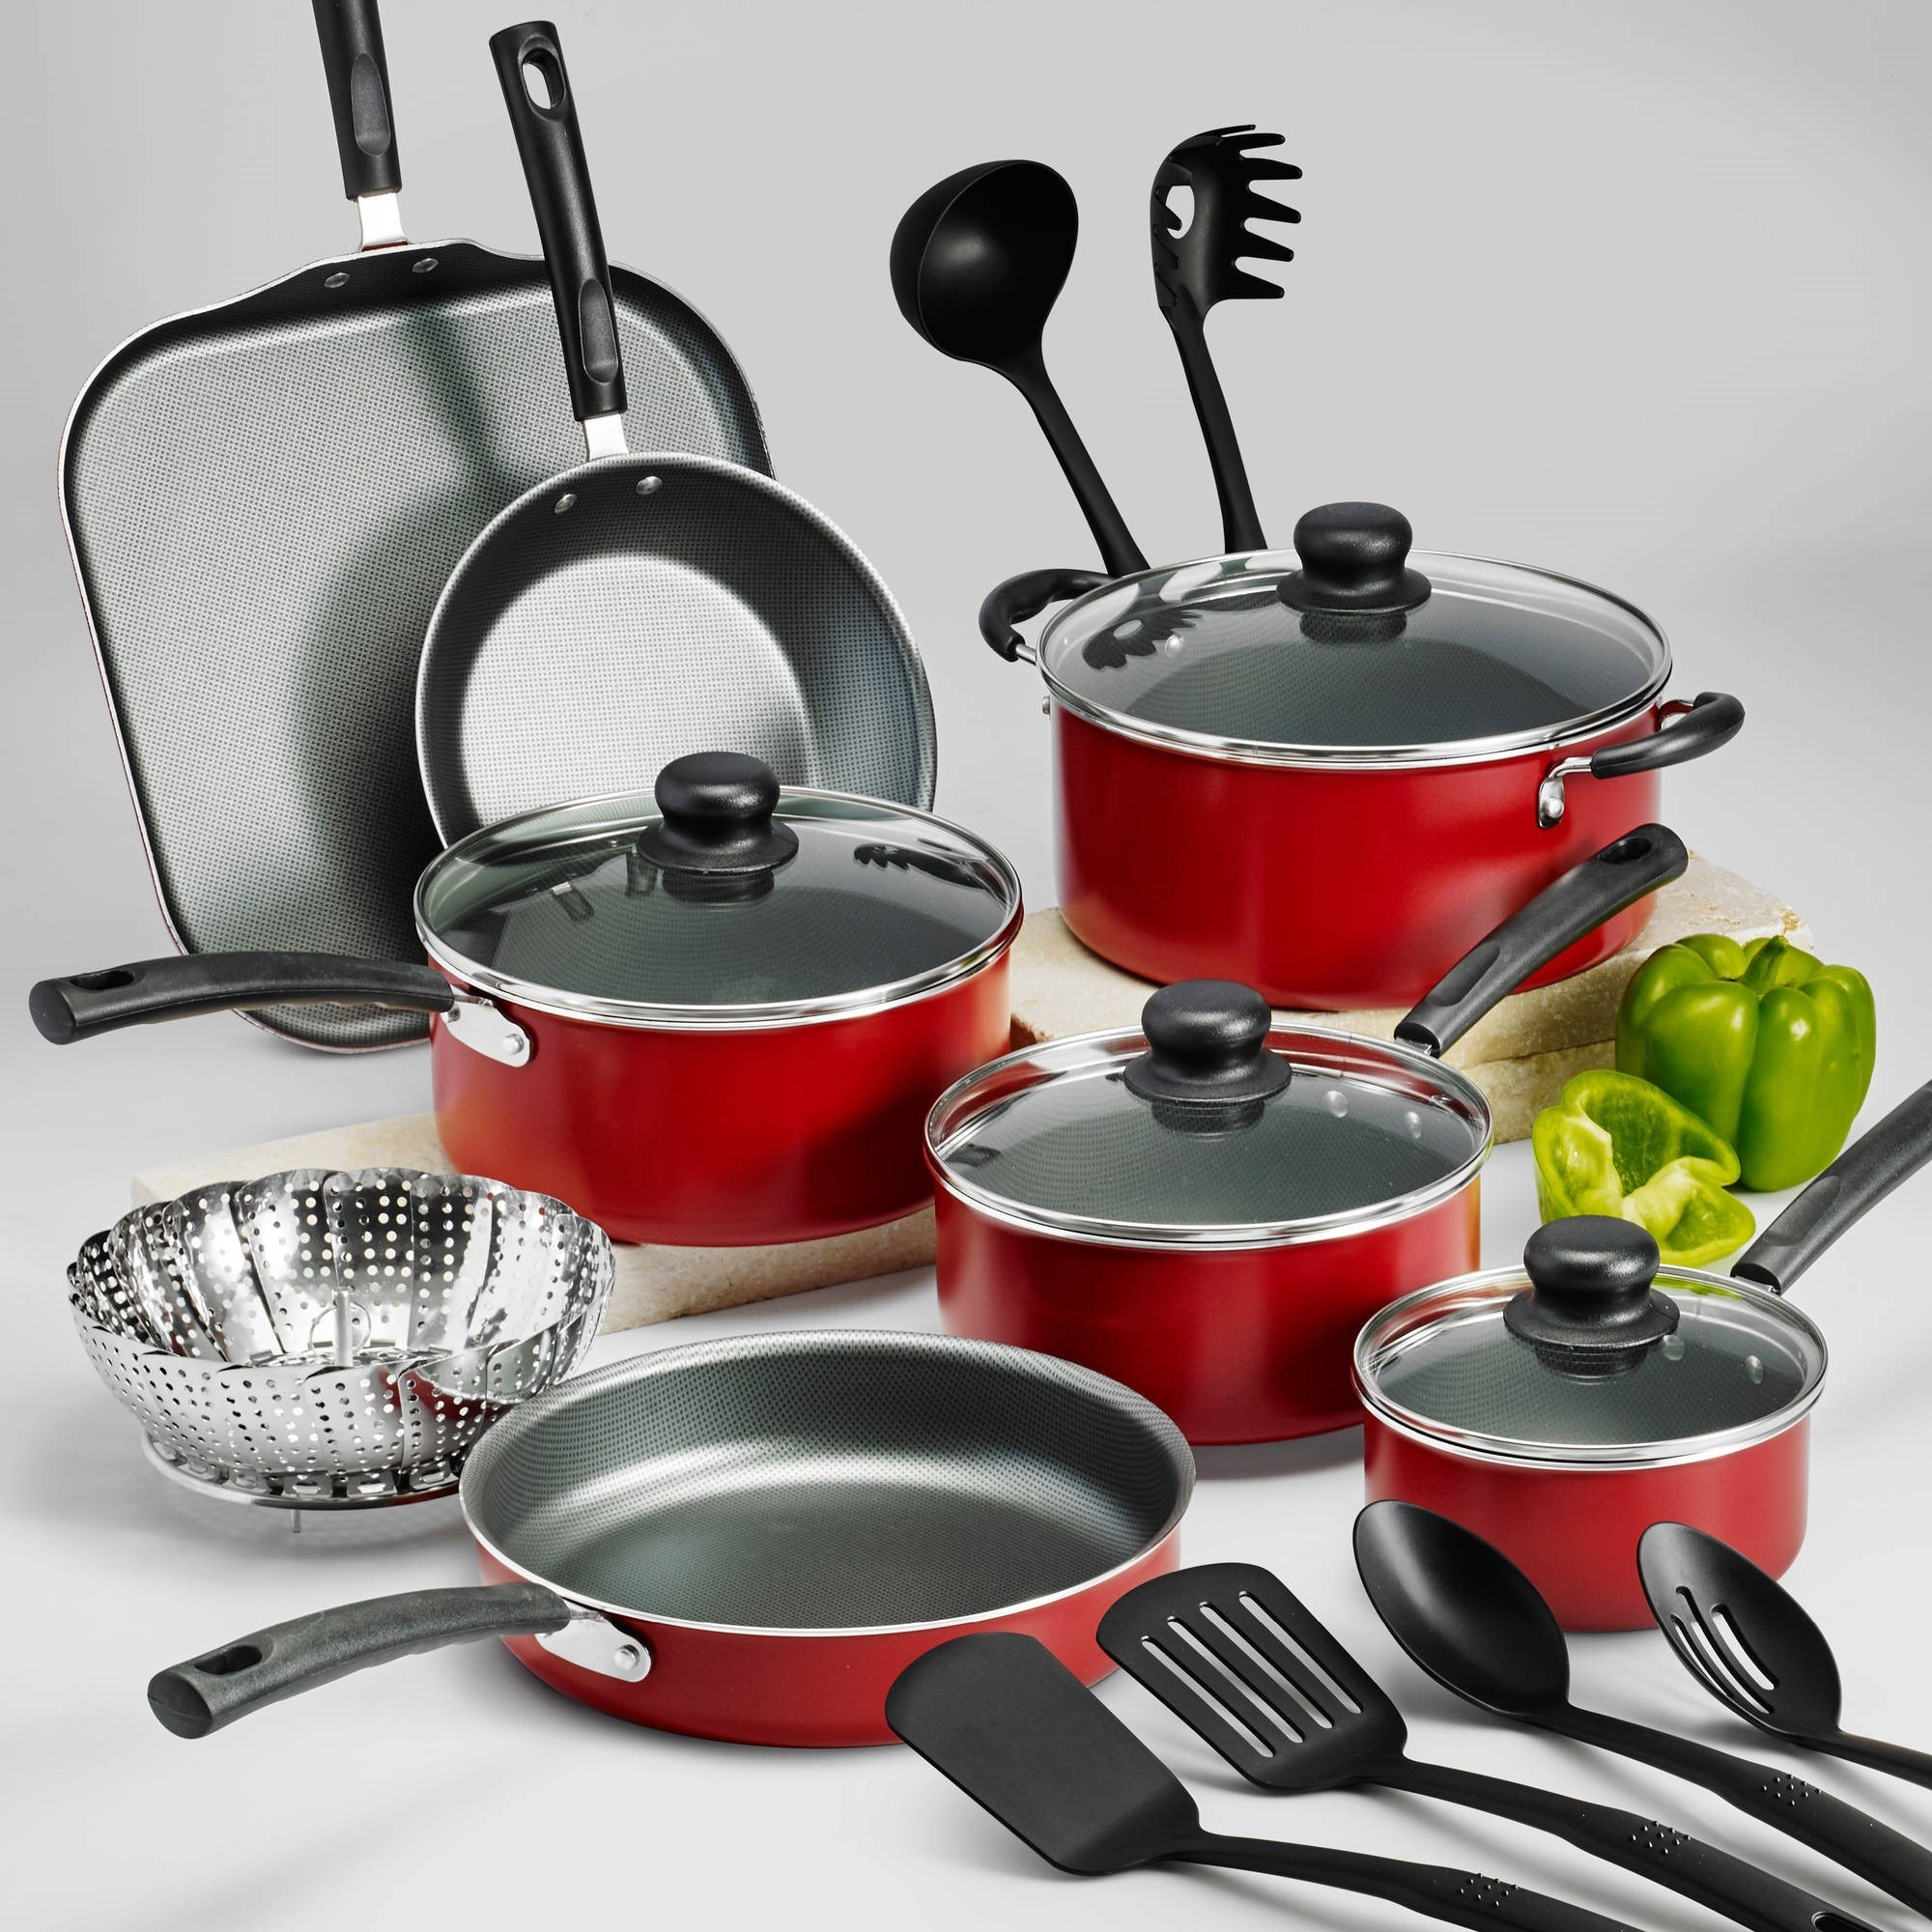 a set of red cookware and black cooking utensils